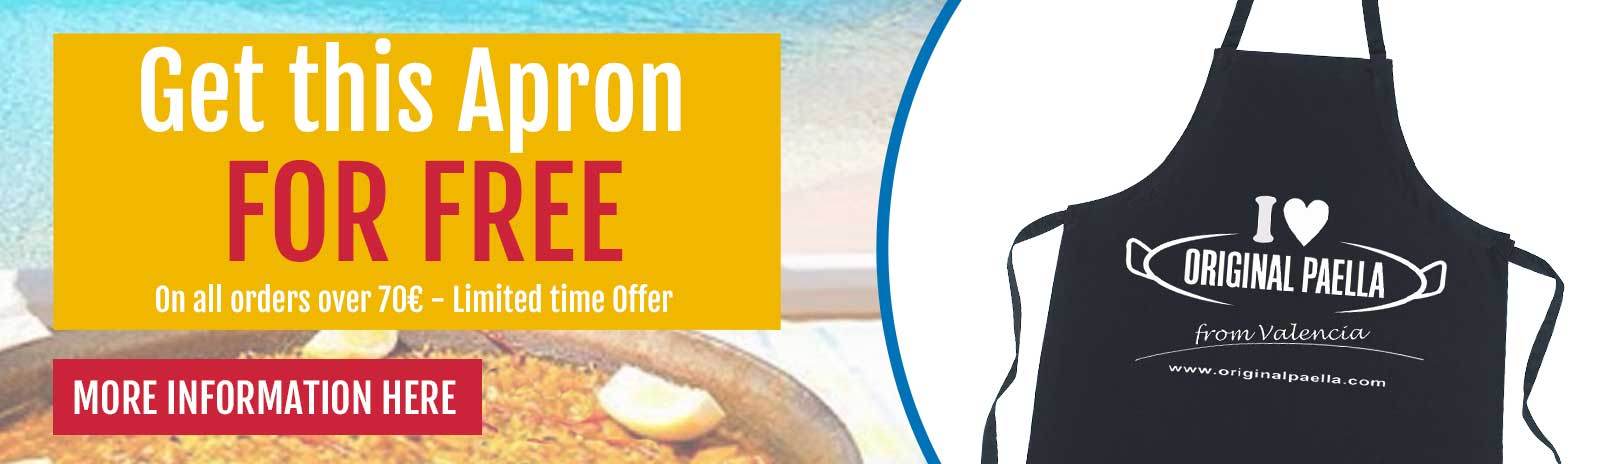 apron original paella from valencia for free